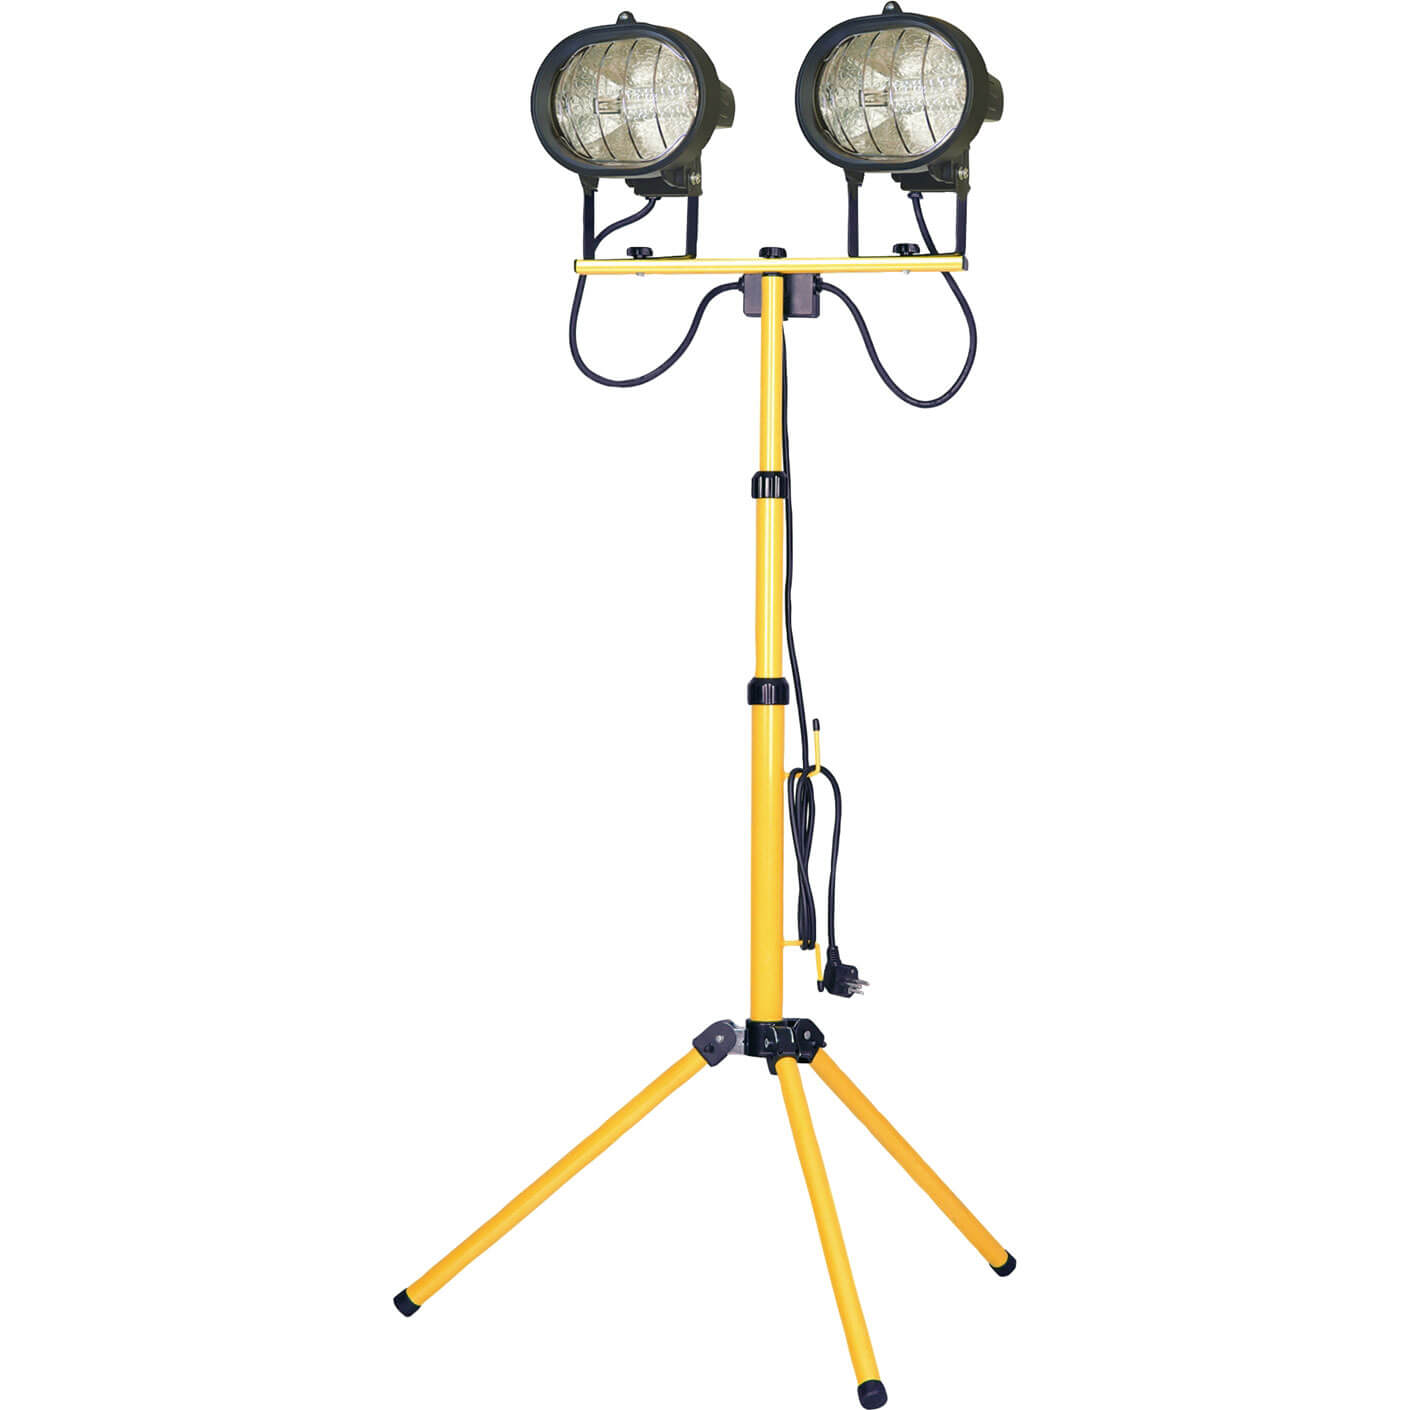 Image of Faithfull Halogen Twin Site Light with Adjustable Stand 1000w 240v